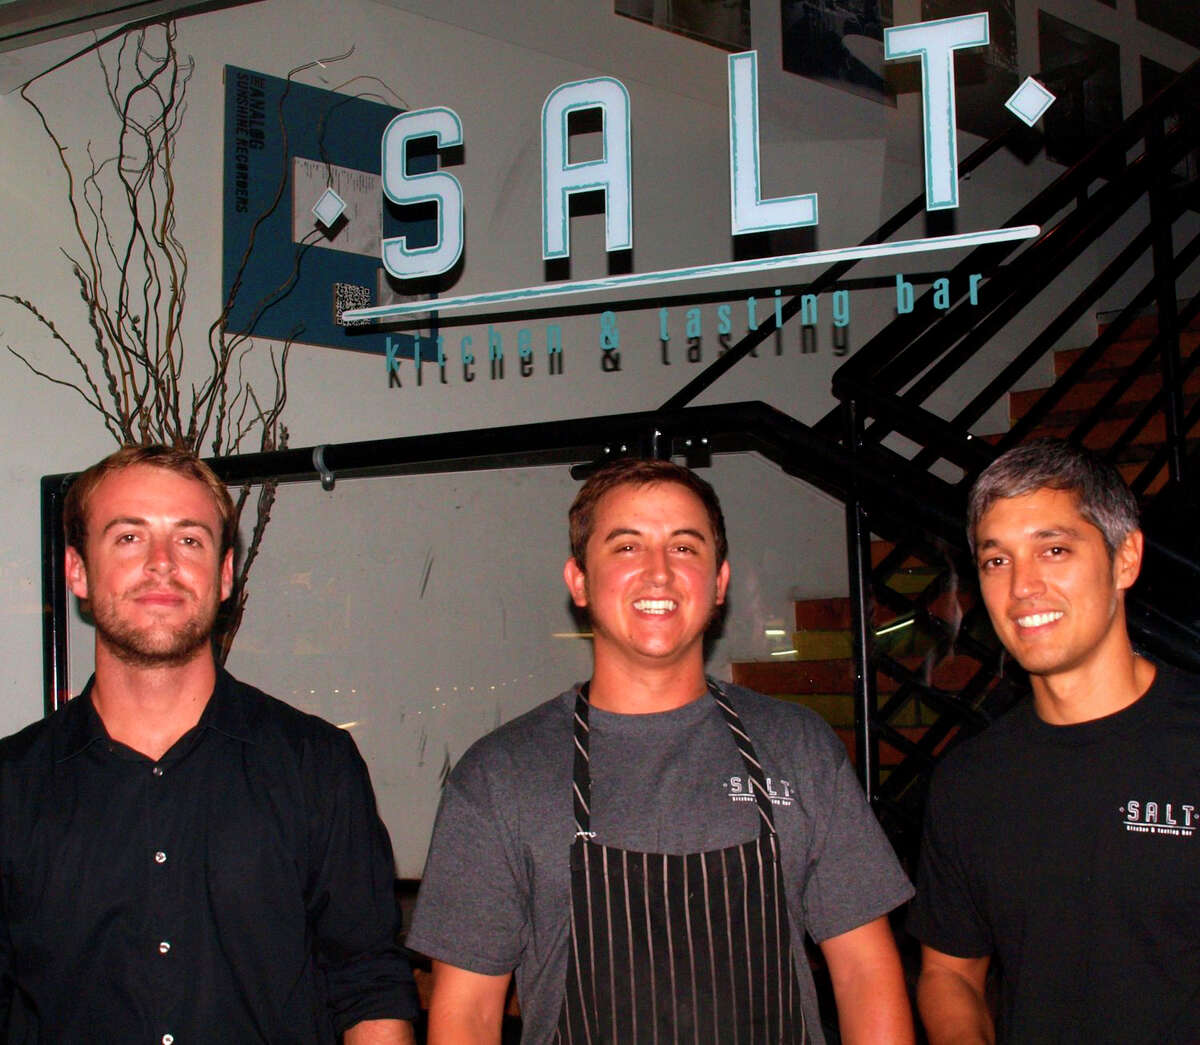 Left to right its Julian, Quinten, and Danny from Salt Kitchen and Tasting Bar